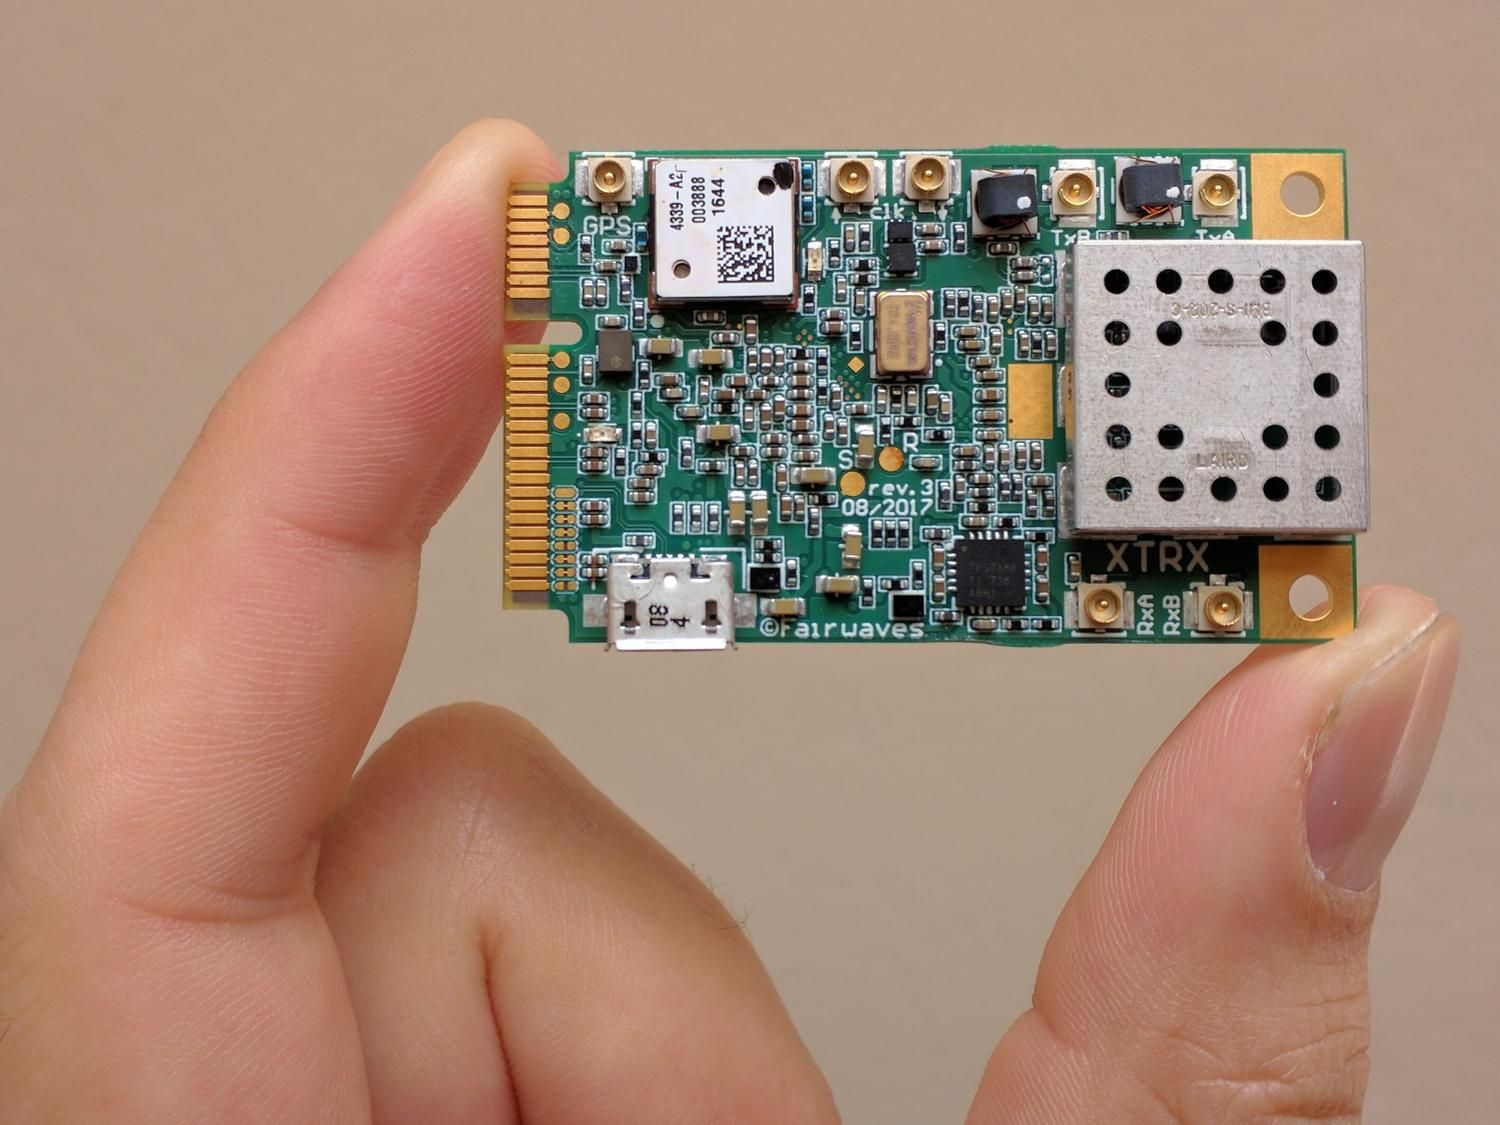 The first ever truly embedded SDR (software defined radio